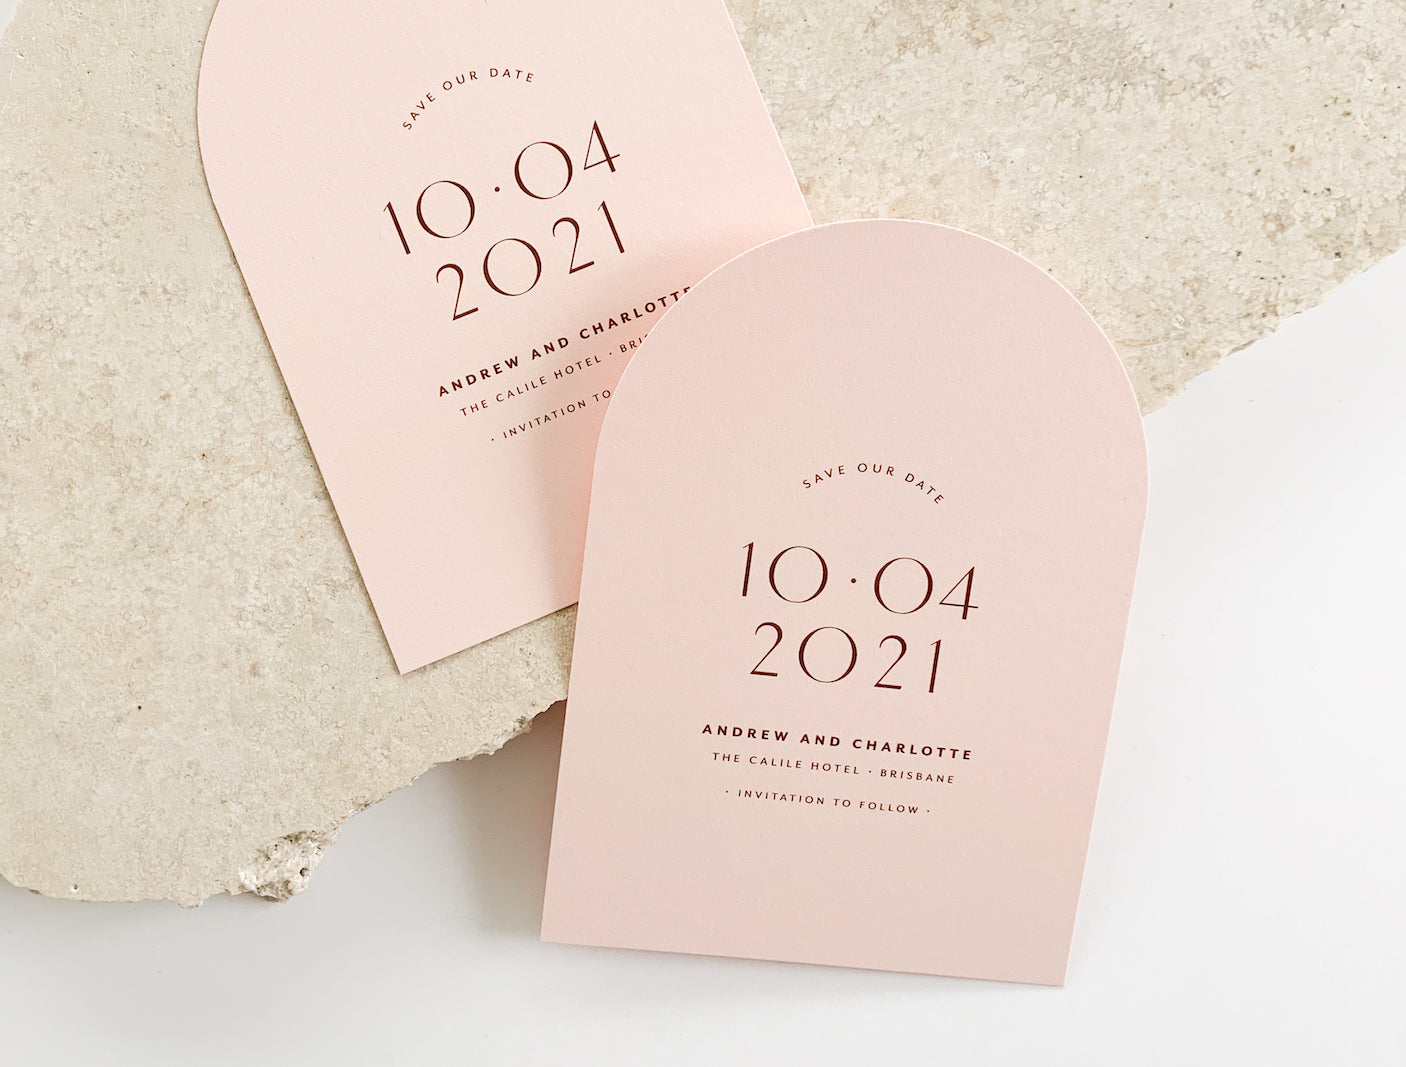 wedding save the date cards in a arch design